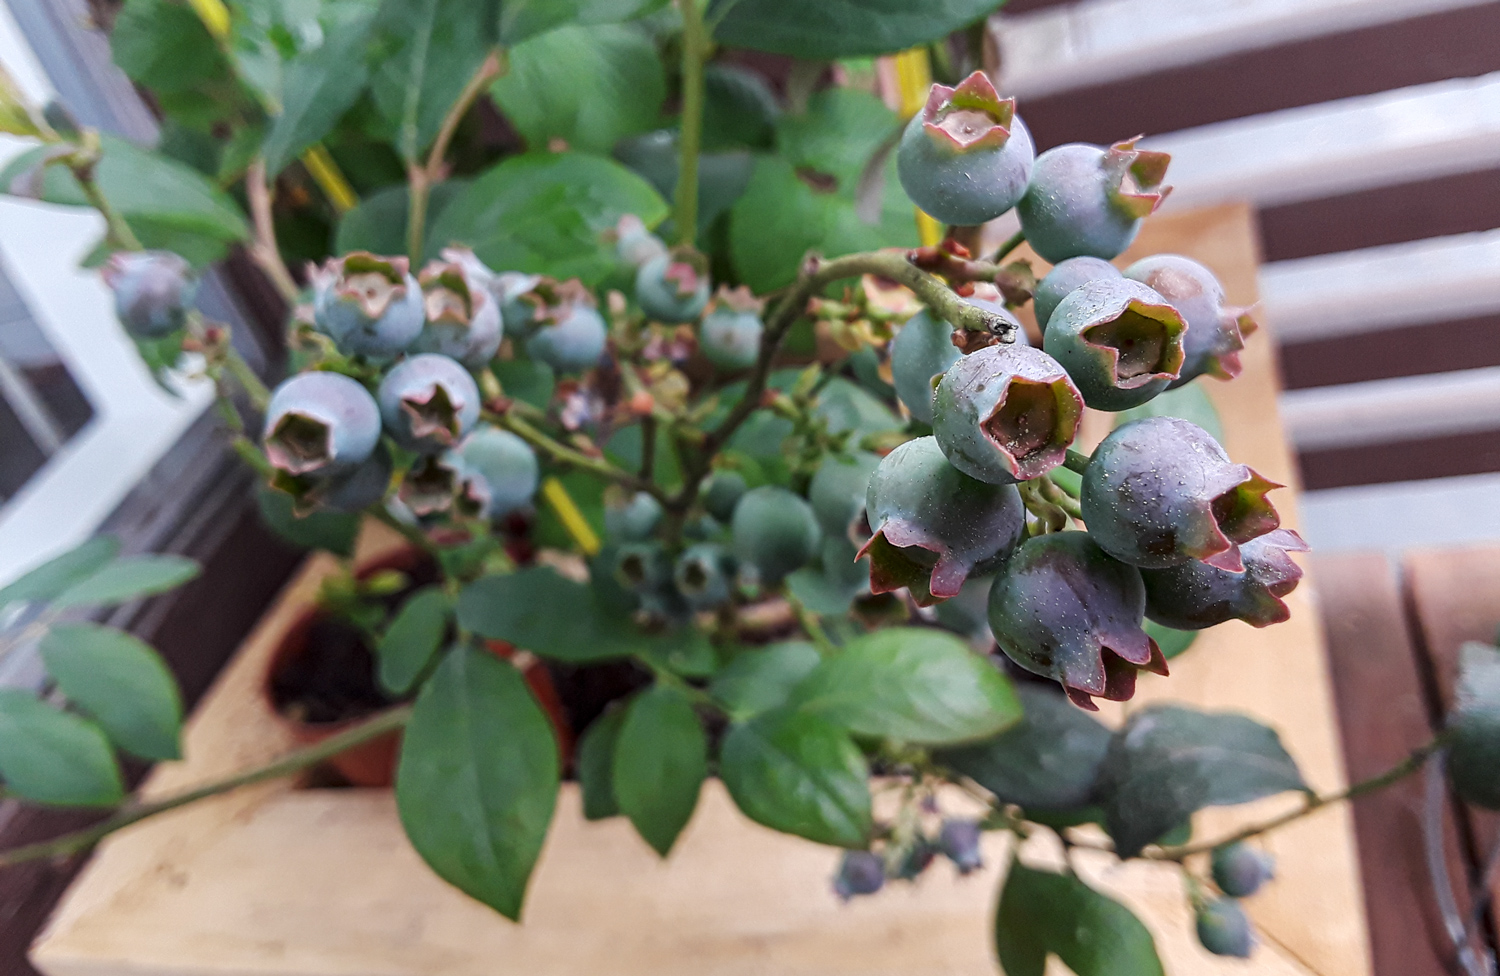 The largest production of blueberries that the plant ever had